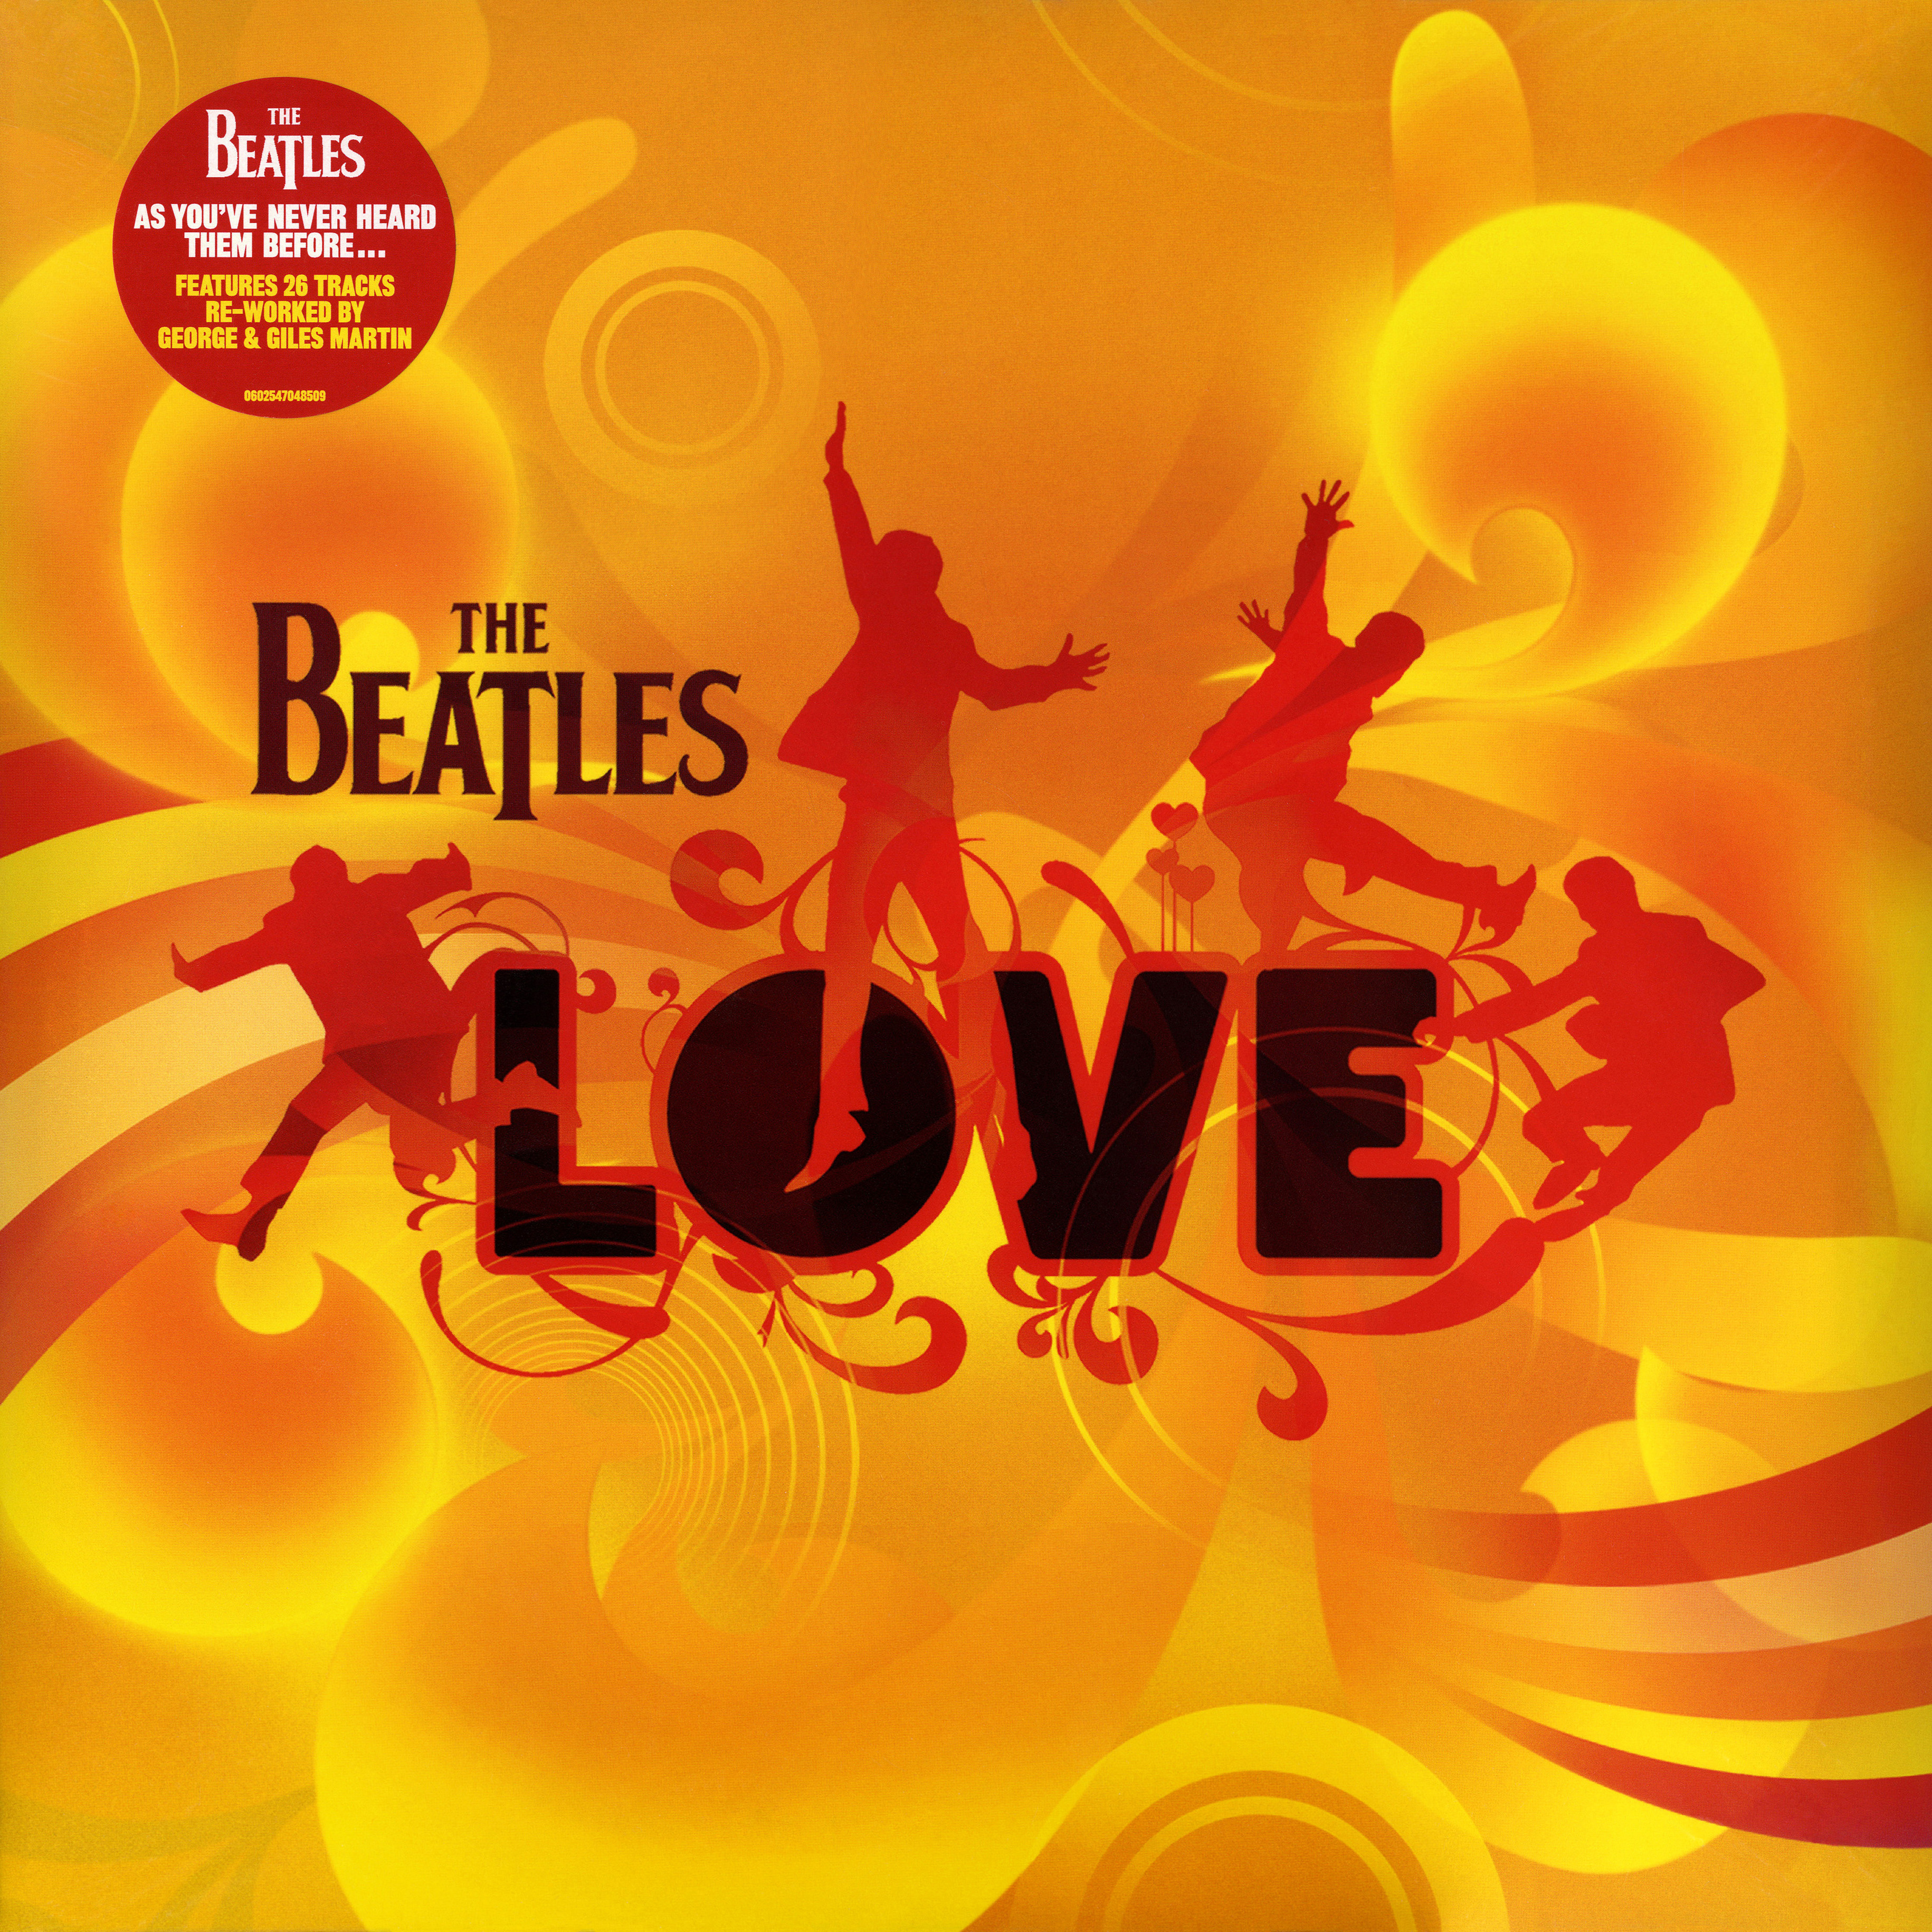 Gmail themes beatles - The Second Pressing Has A Gatefold Sleeve With Apple And Cirque Du Solril Logos On Back Side And Date 2006 And With Credits Beatles Is A Trademarks Of